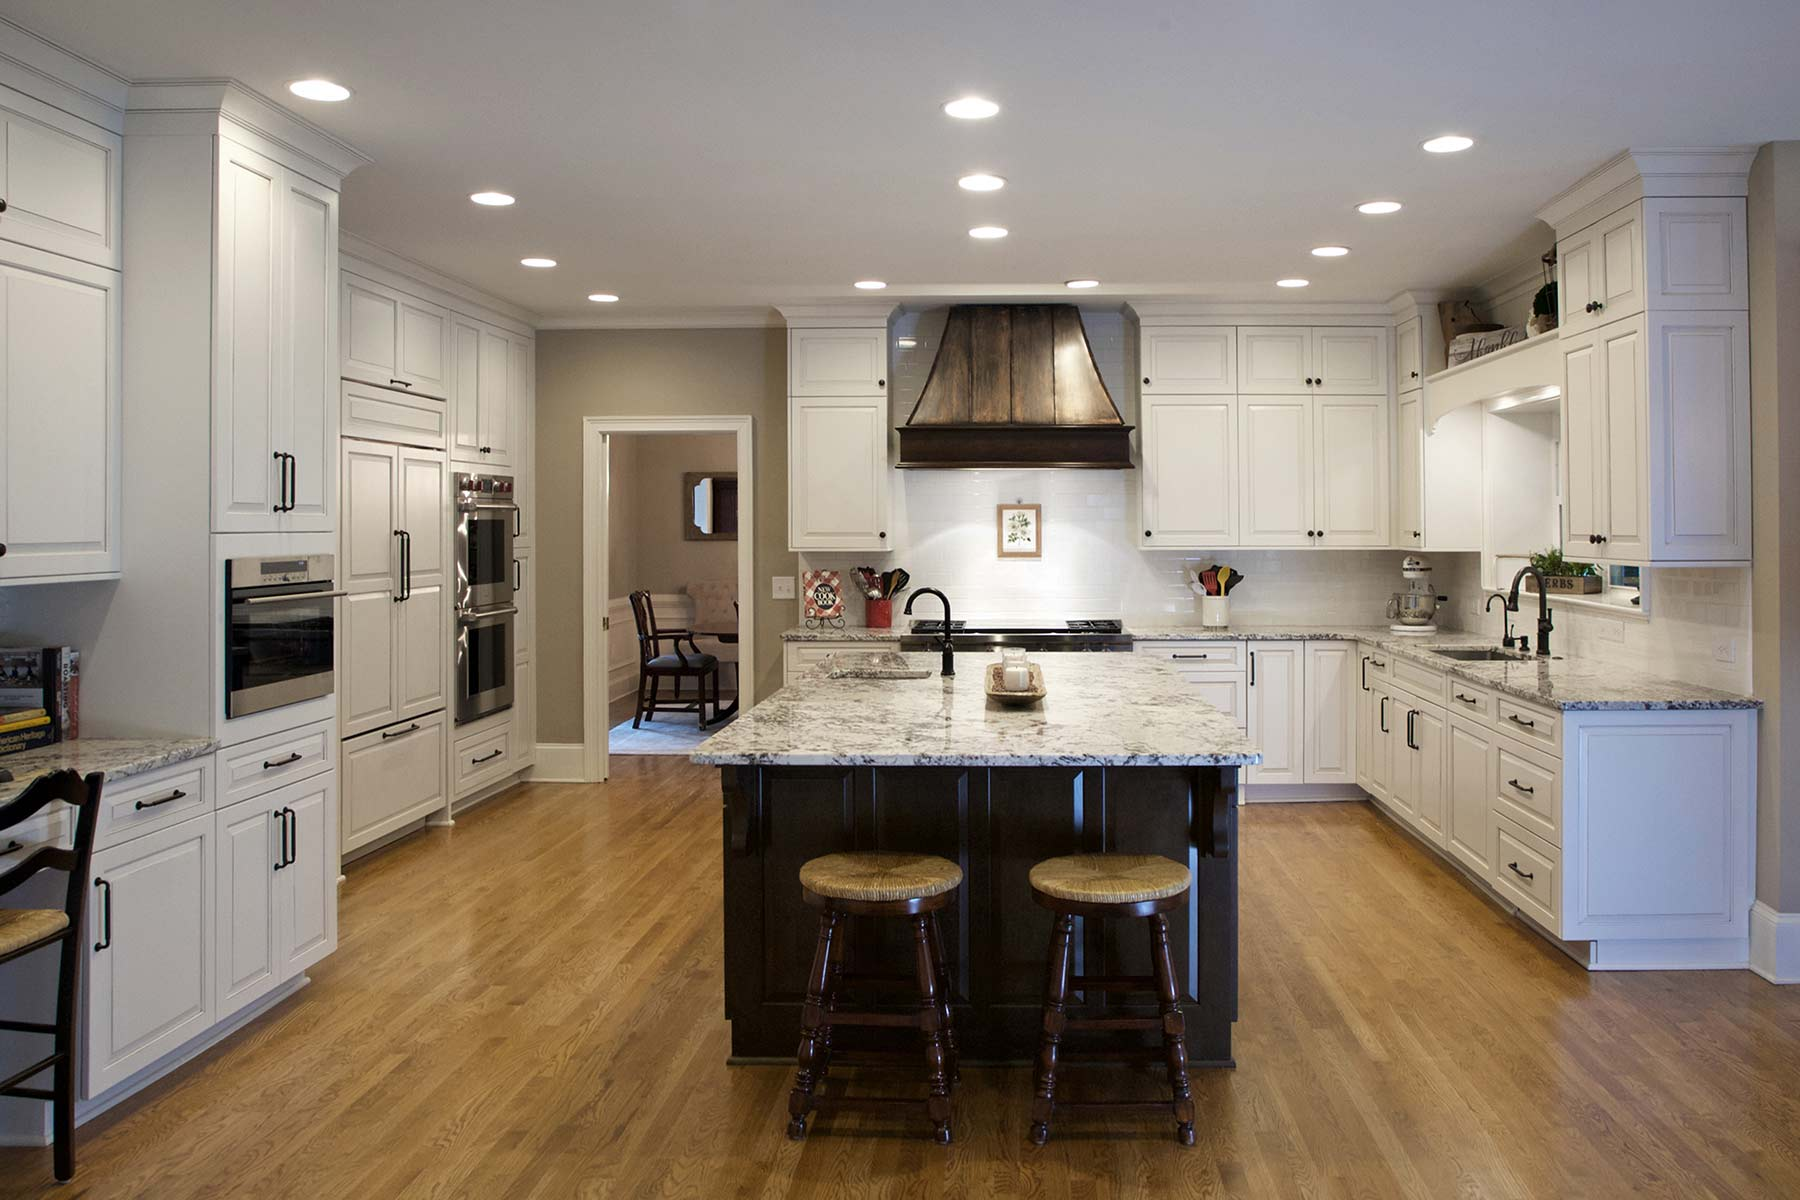 Remodeled kitchen in Roswell, GA with a fully-functional island